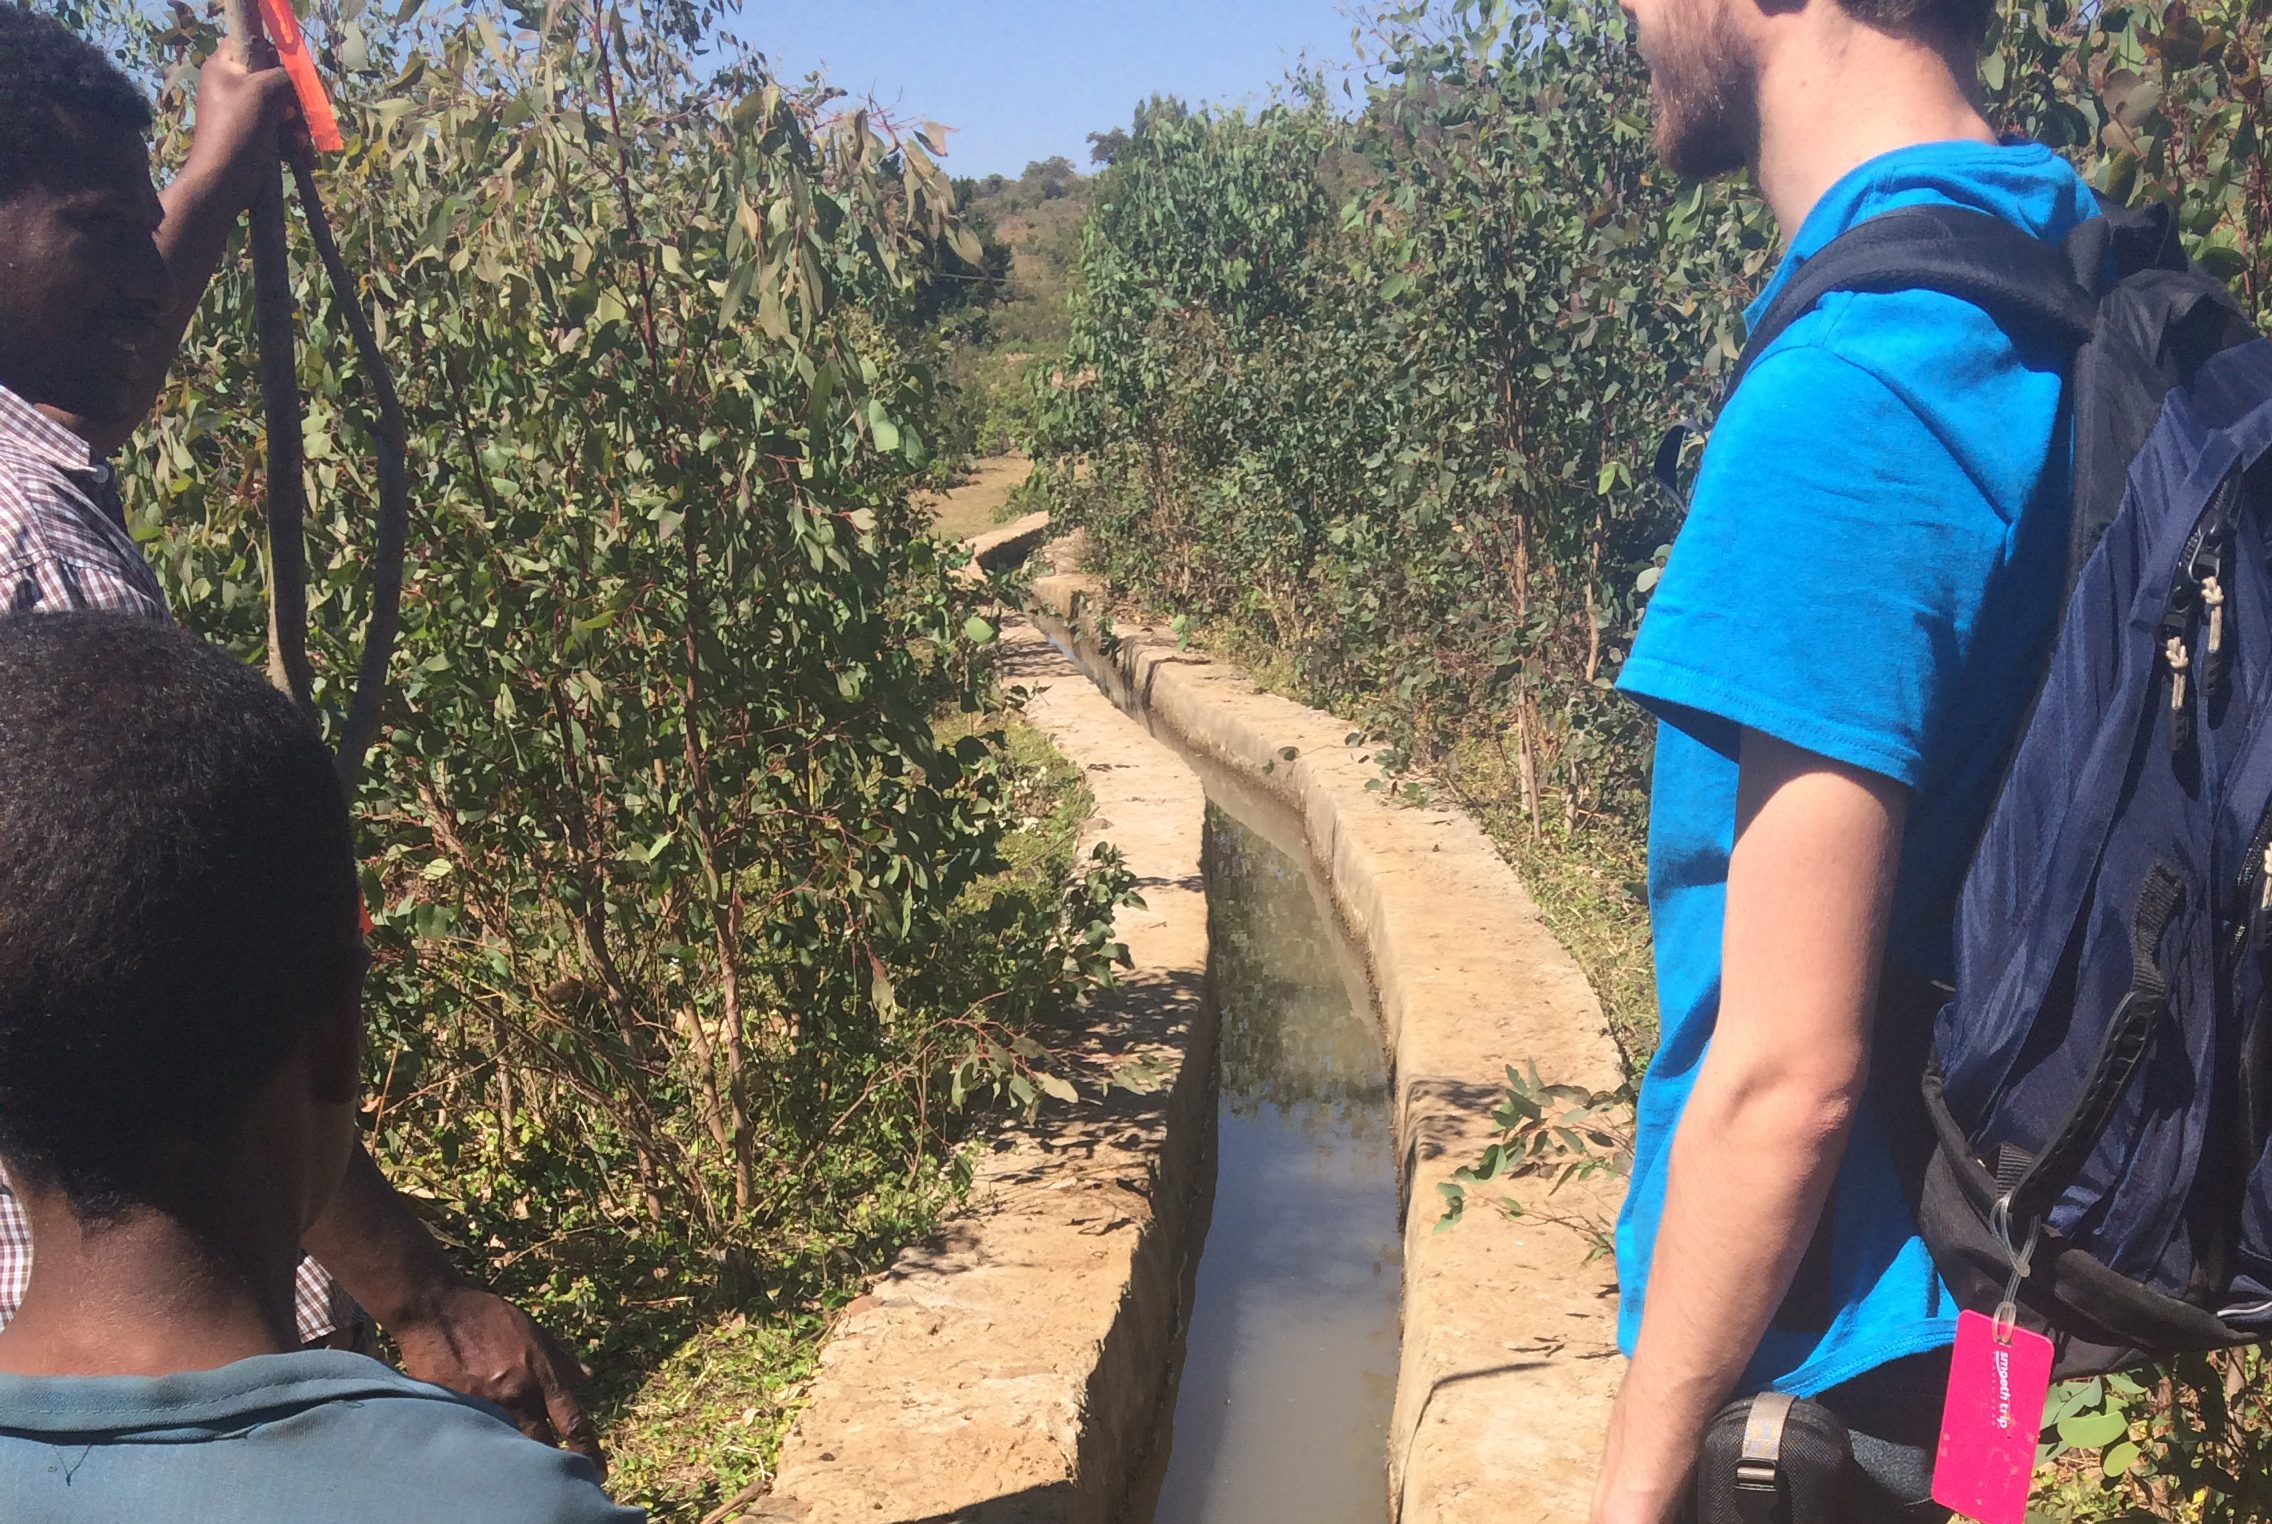 Ryan Cordier '18 (ENG), right, views the current irrigation system in an Ethiopian village along with two local residents.